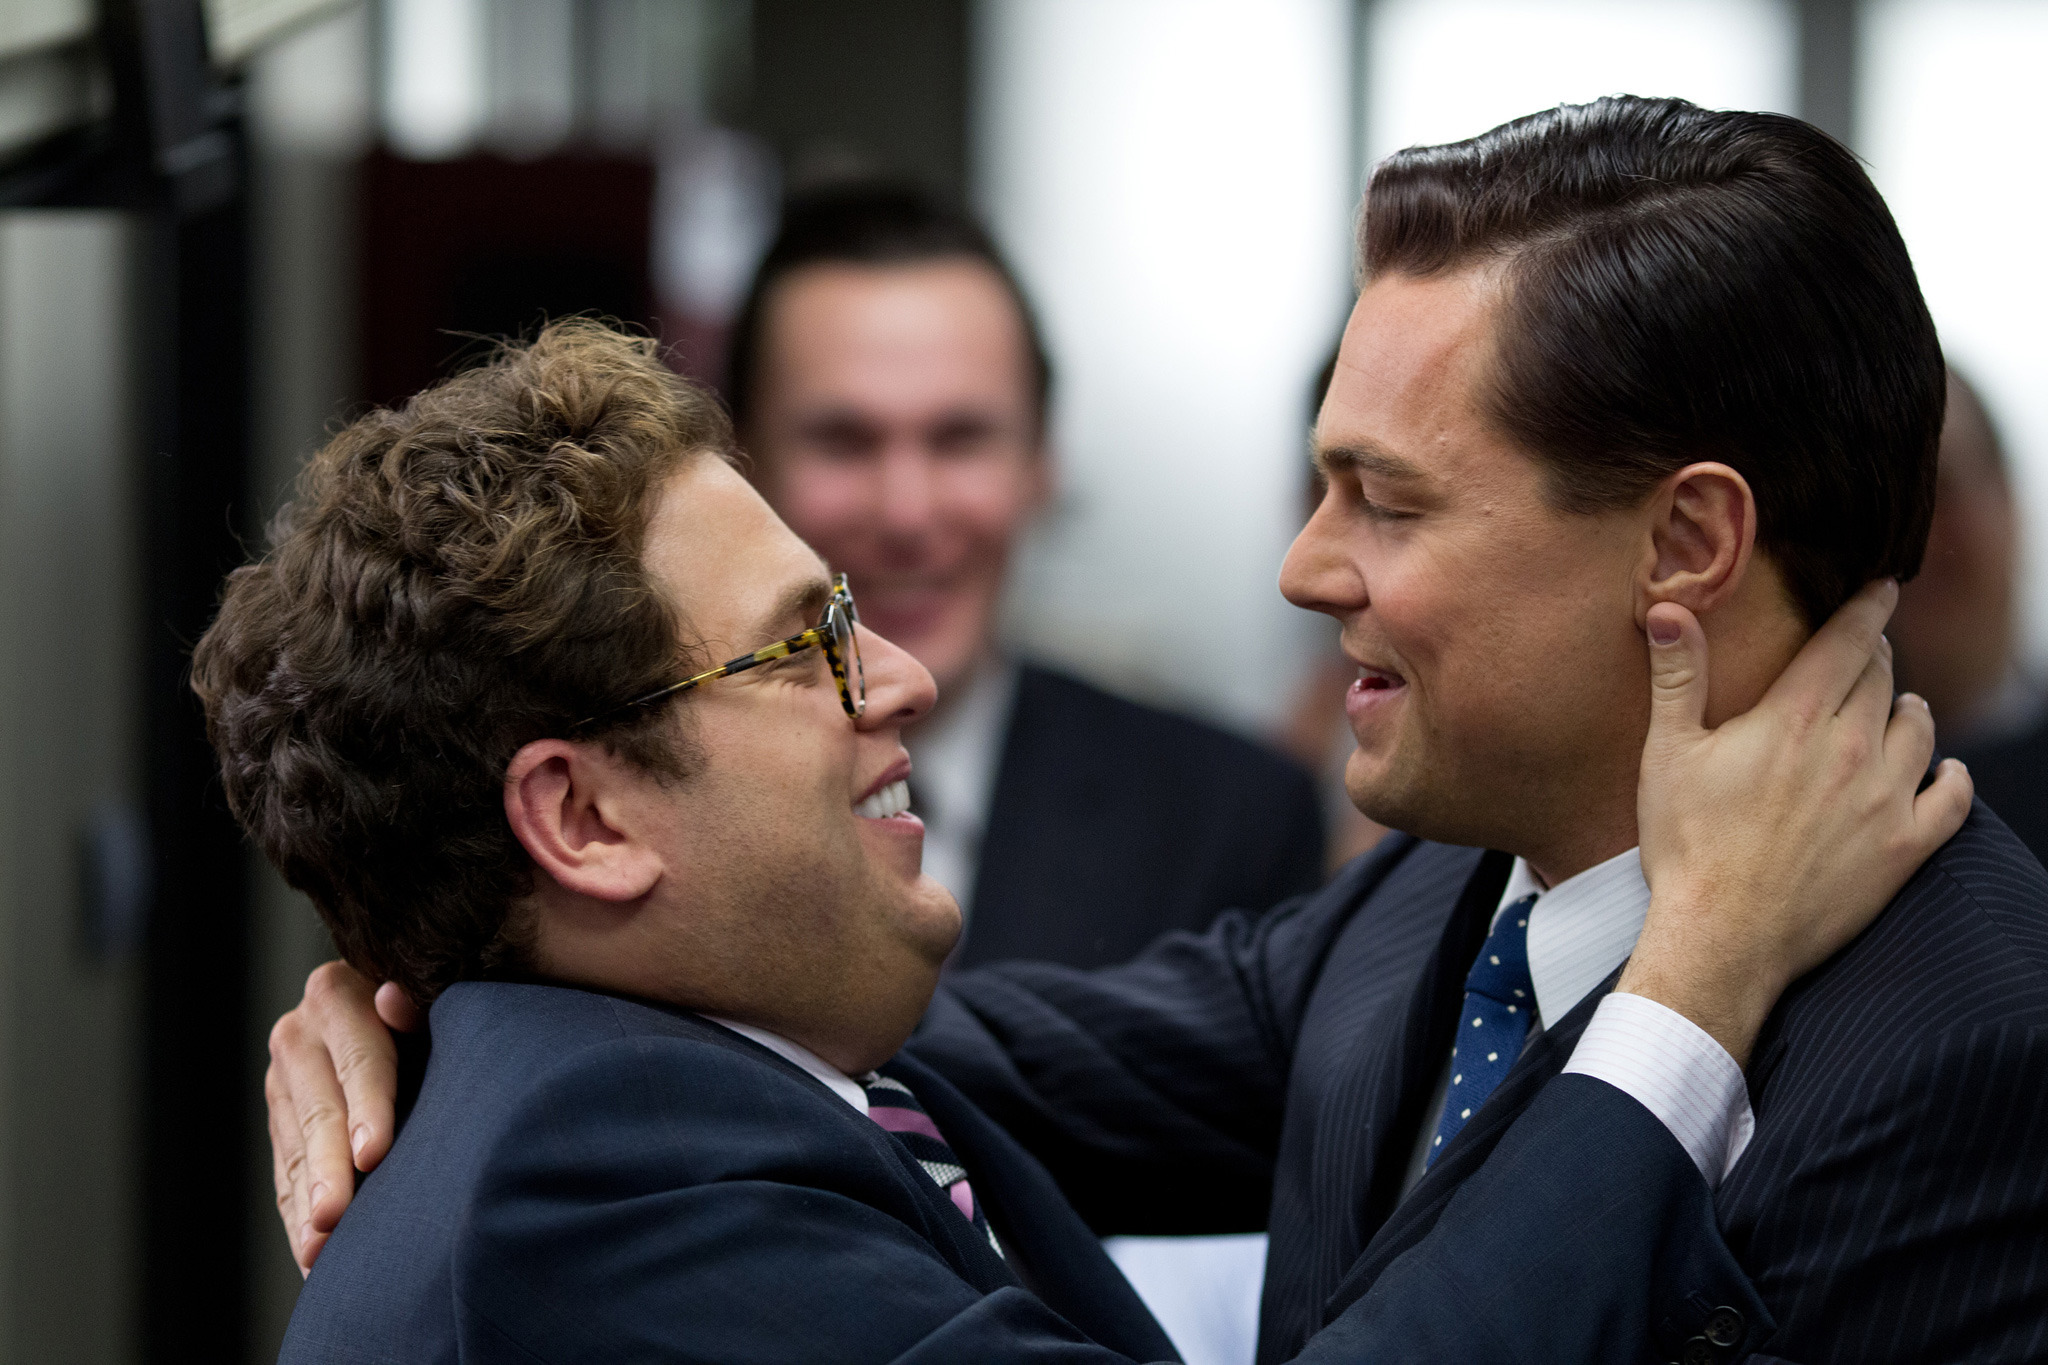 10. The Wolf of Wall Street